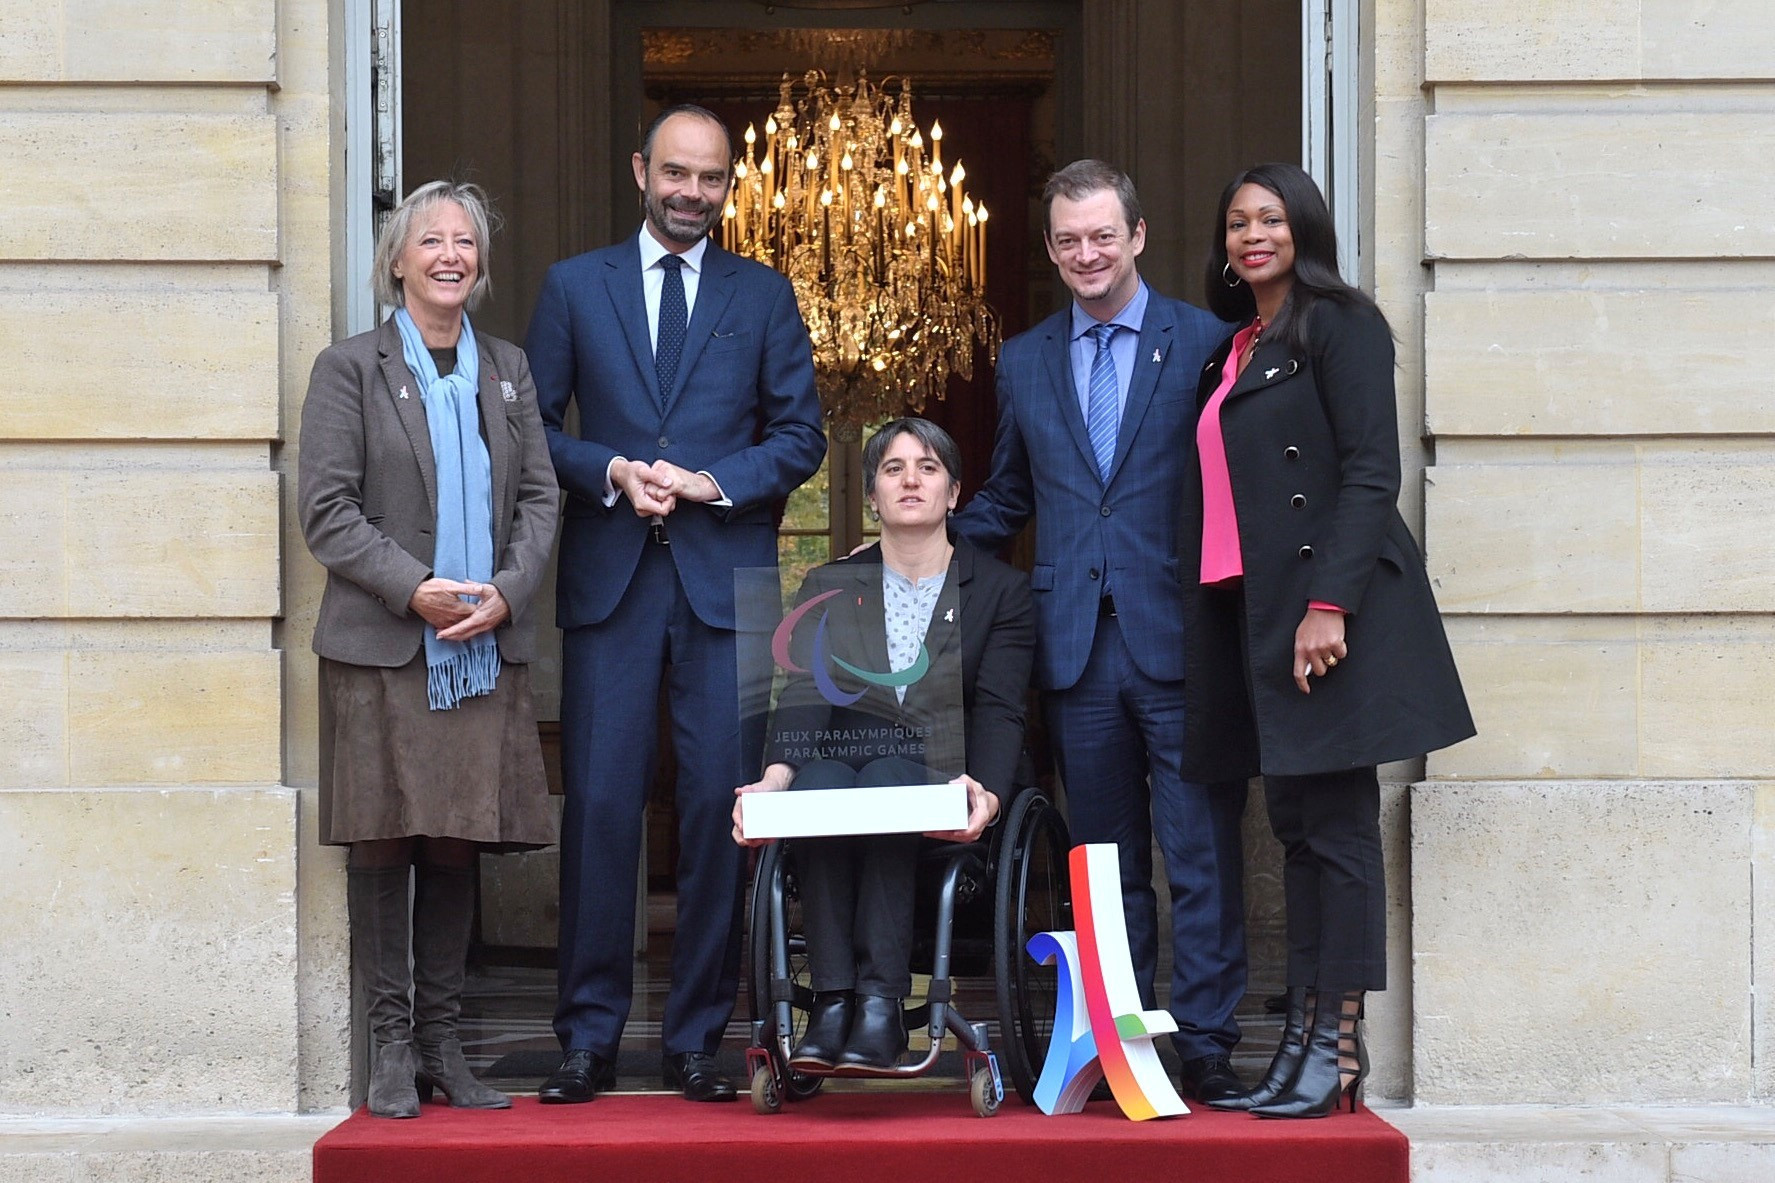 Paris 2024 already shaping up for fully integrated Paralympics, says IPC President